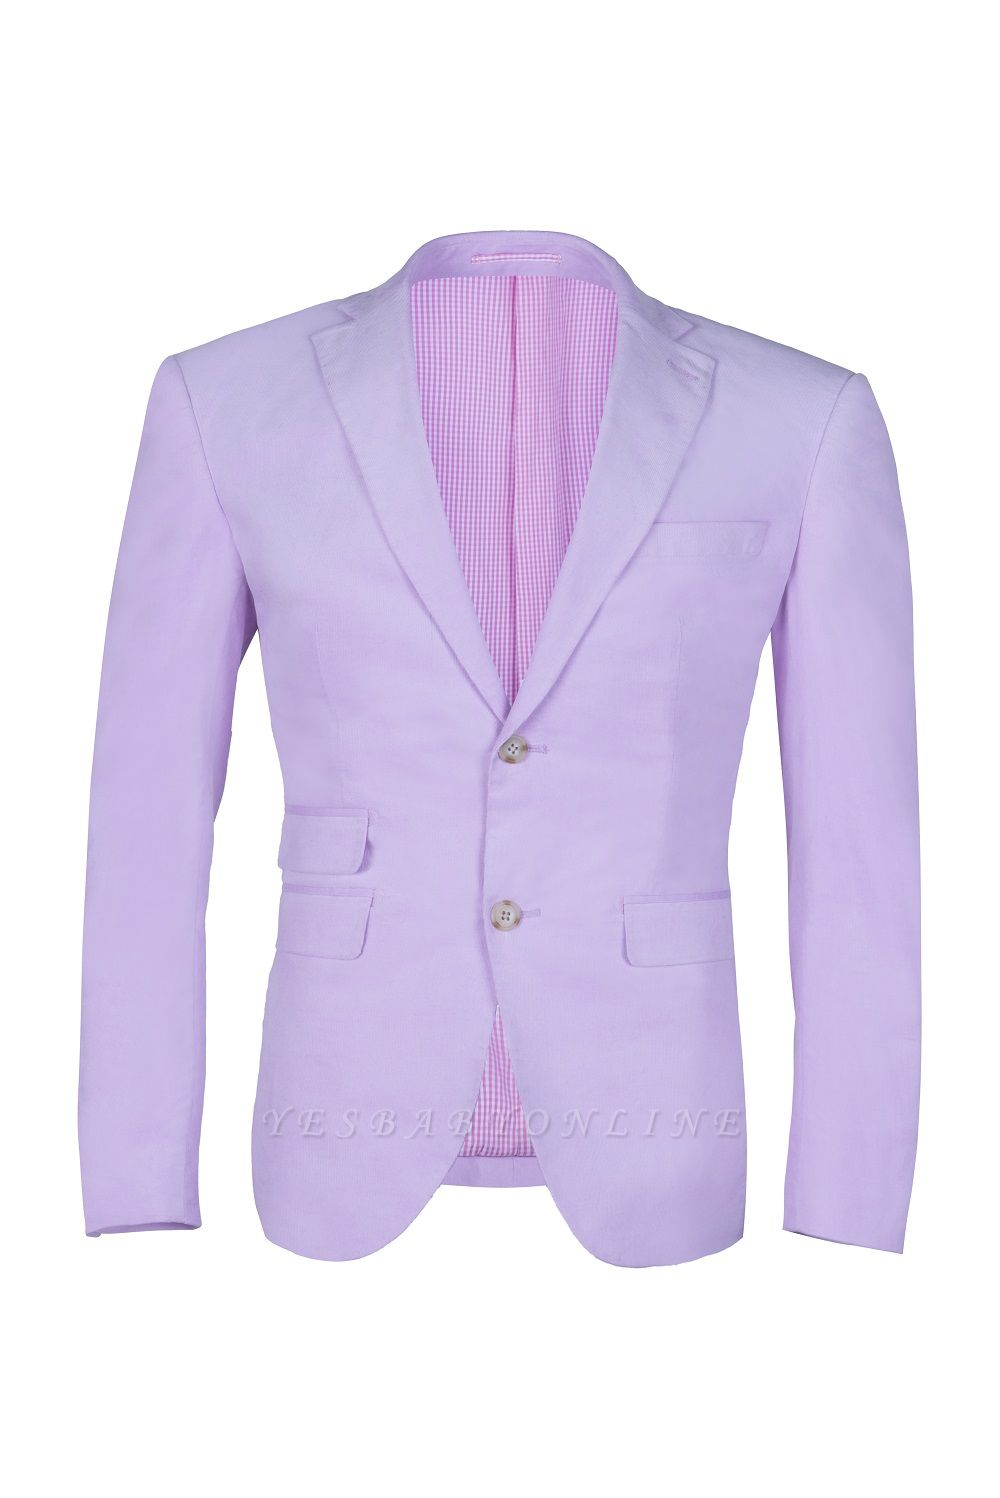 Custom Made Hot Recommend Lavender Peak Lapel Single Breasted Wedding Suit